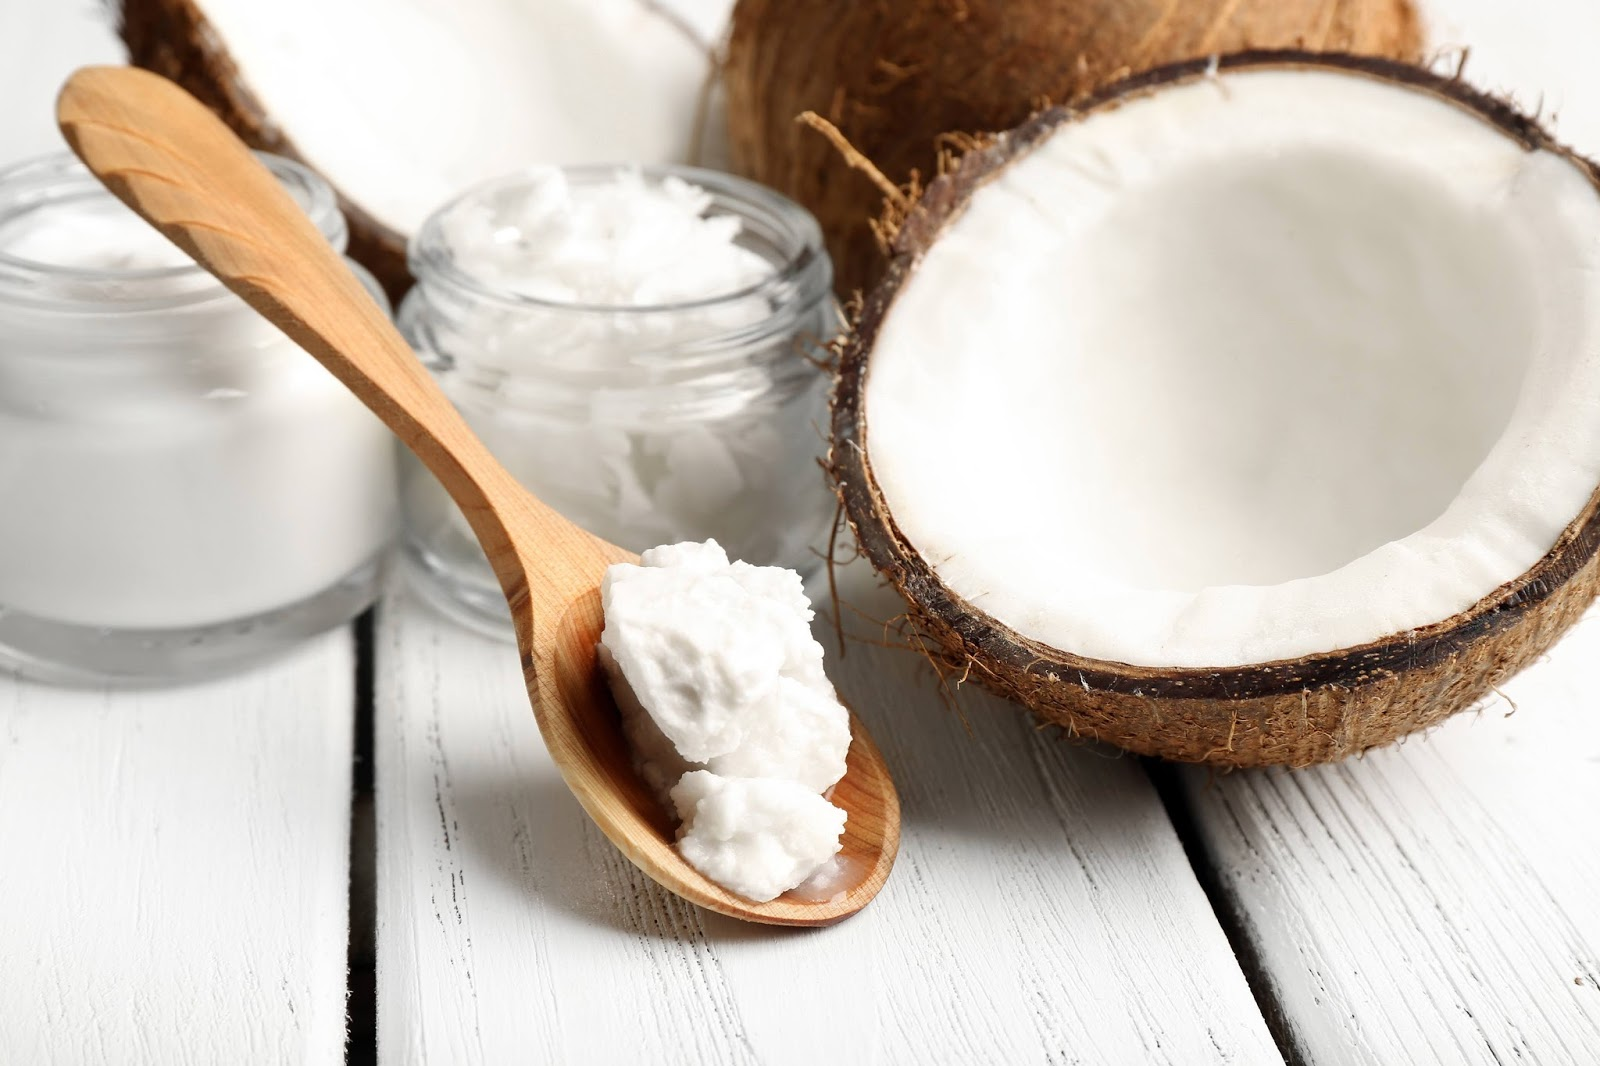 Creamed coconut on wooden spoon